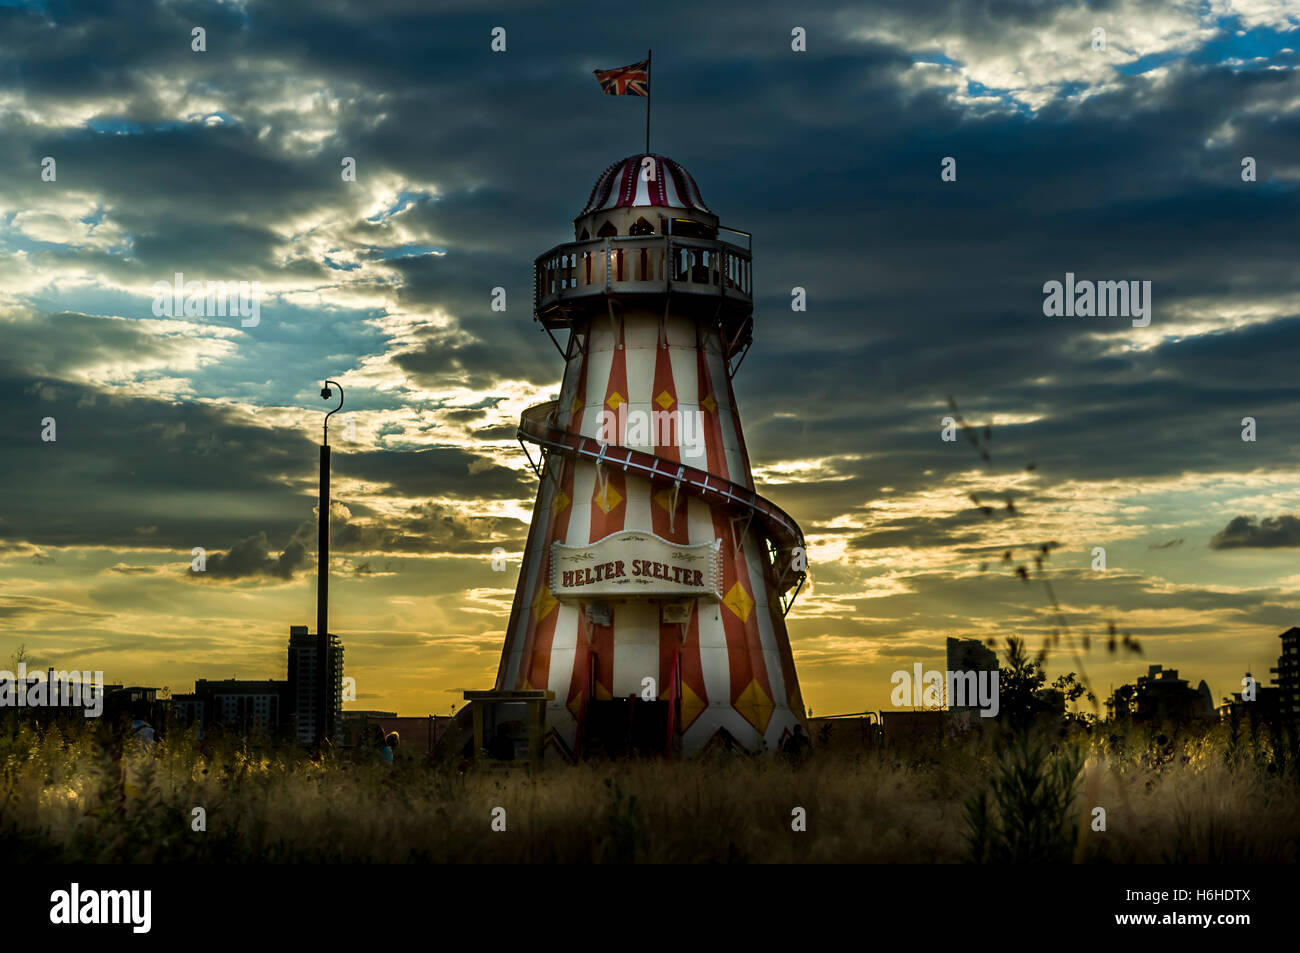 A dark and moody scene, with dramatic sky and a helter skelter, at Greenwich, London. - Stock Image